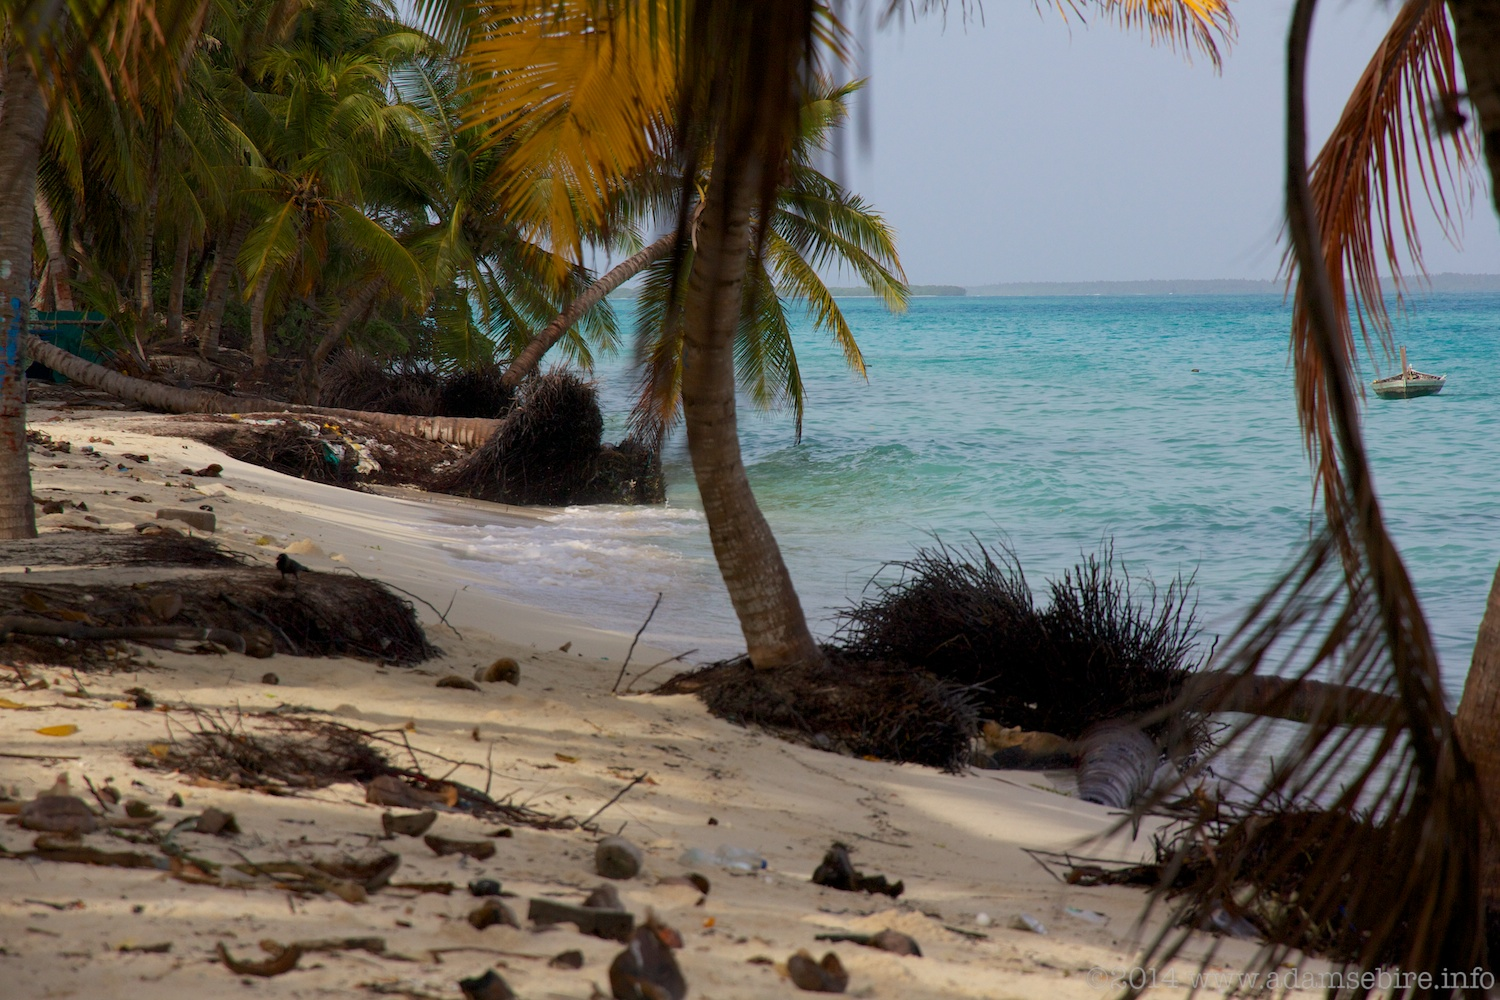 Maldives island erosion; palm trees disappear into the ocean